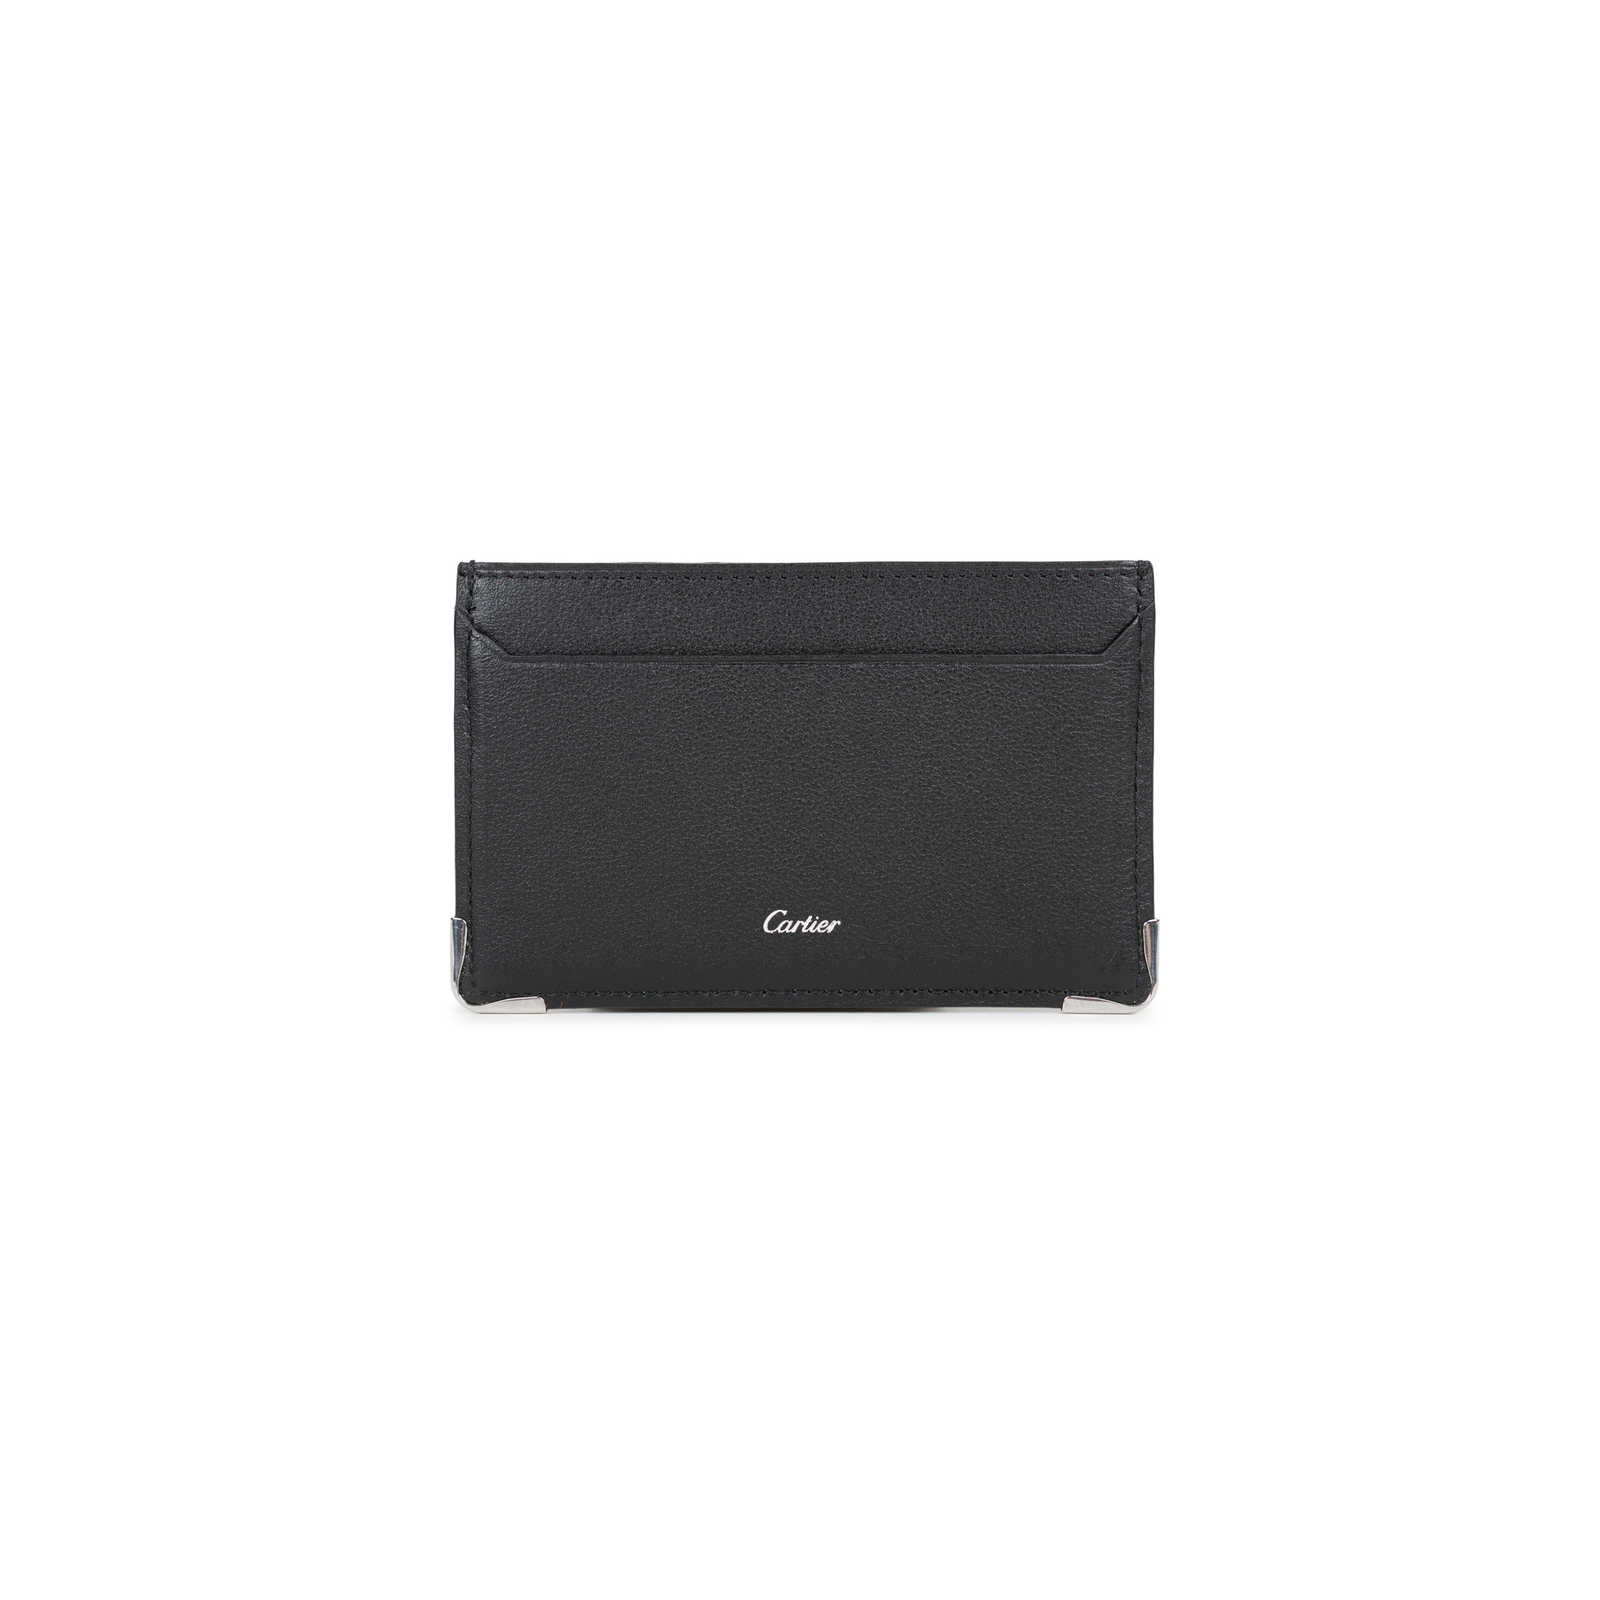 56df5f77ee0d ... Authentic Second Hand Cartier Logo Cardholder (PSS-356-00017) -  Thumbnail 1 ...